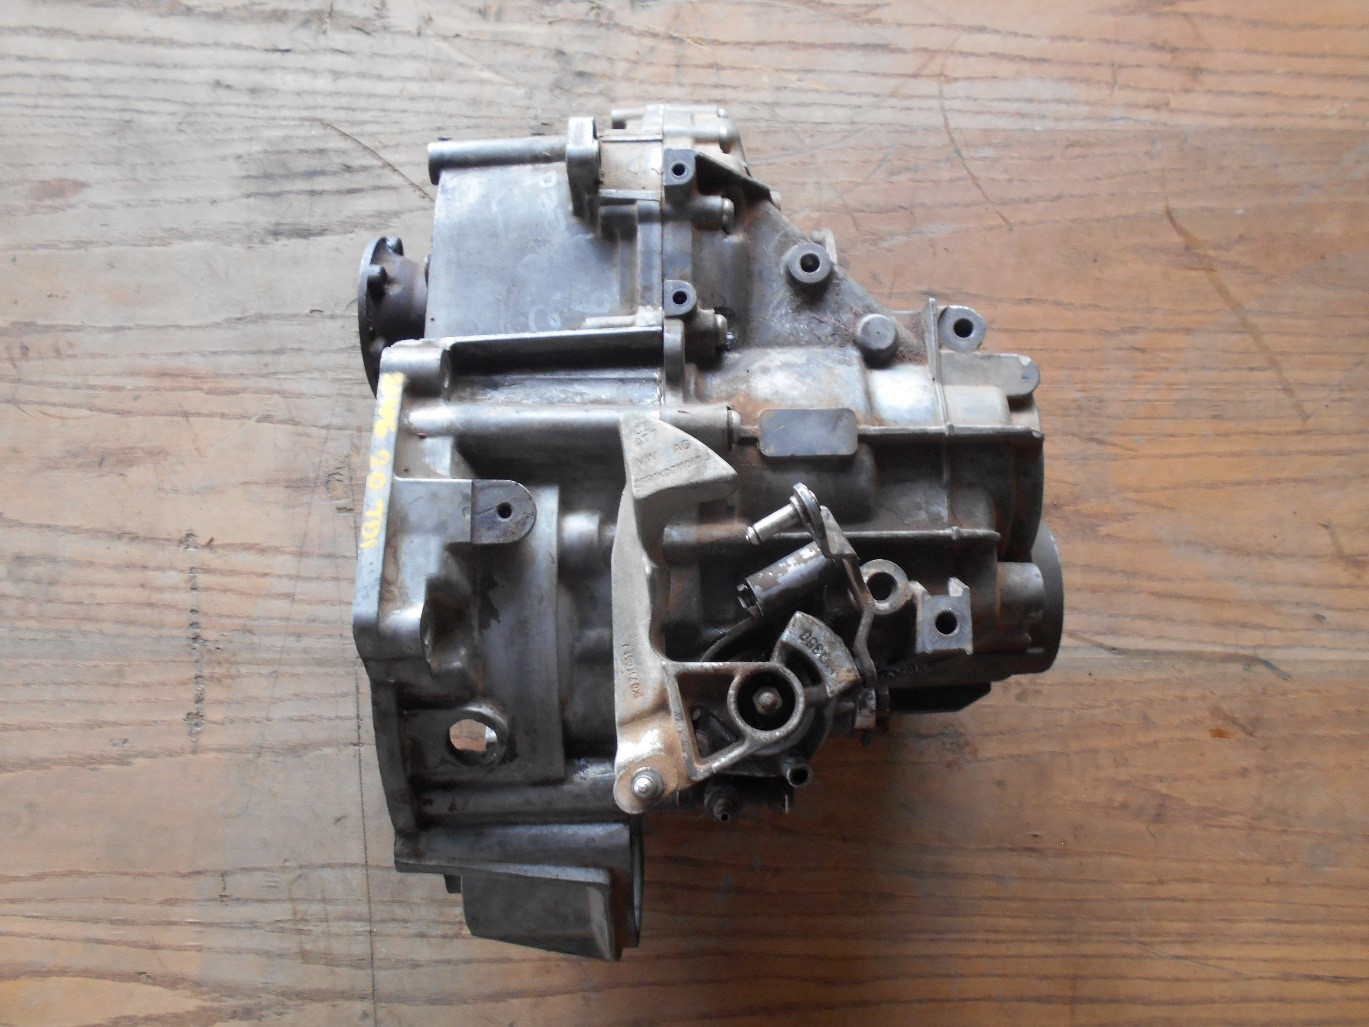 Audi A3 2.0 TDI BKD Gearbox for sale